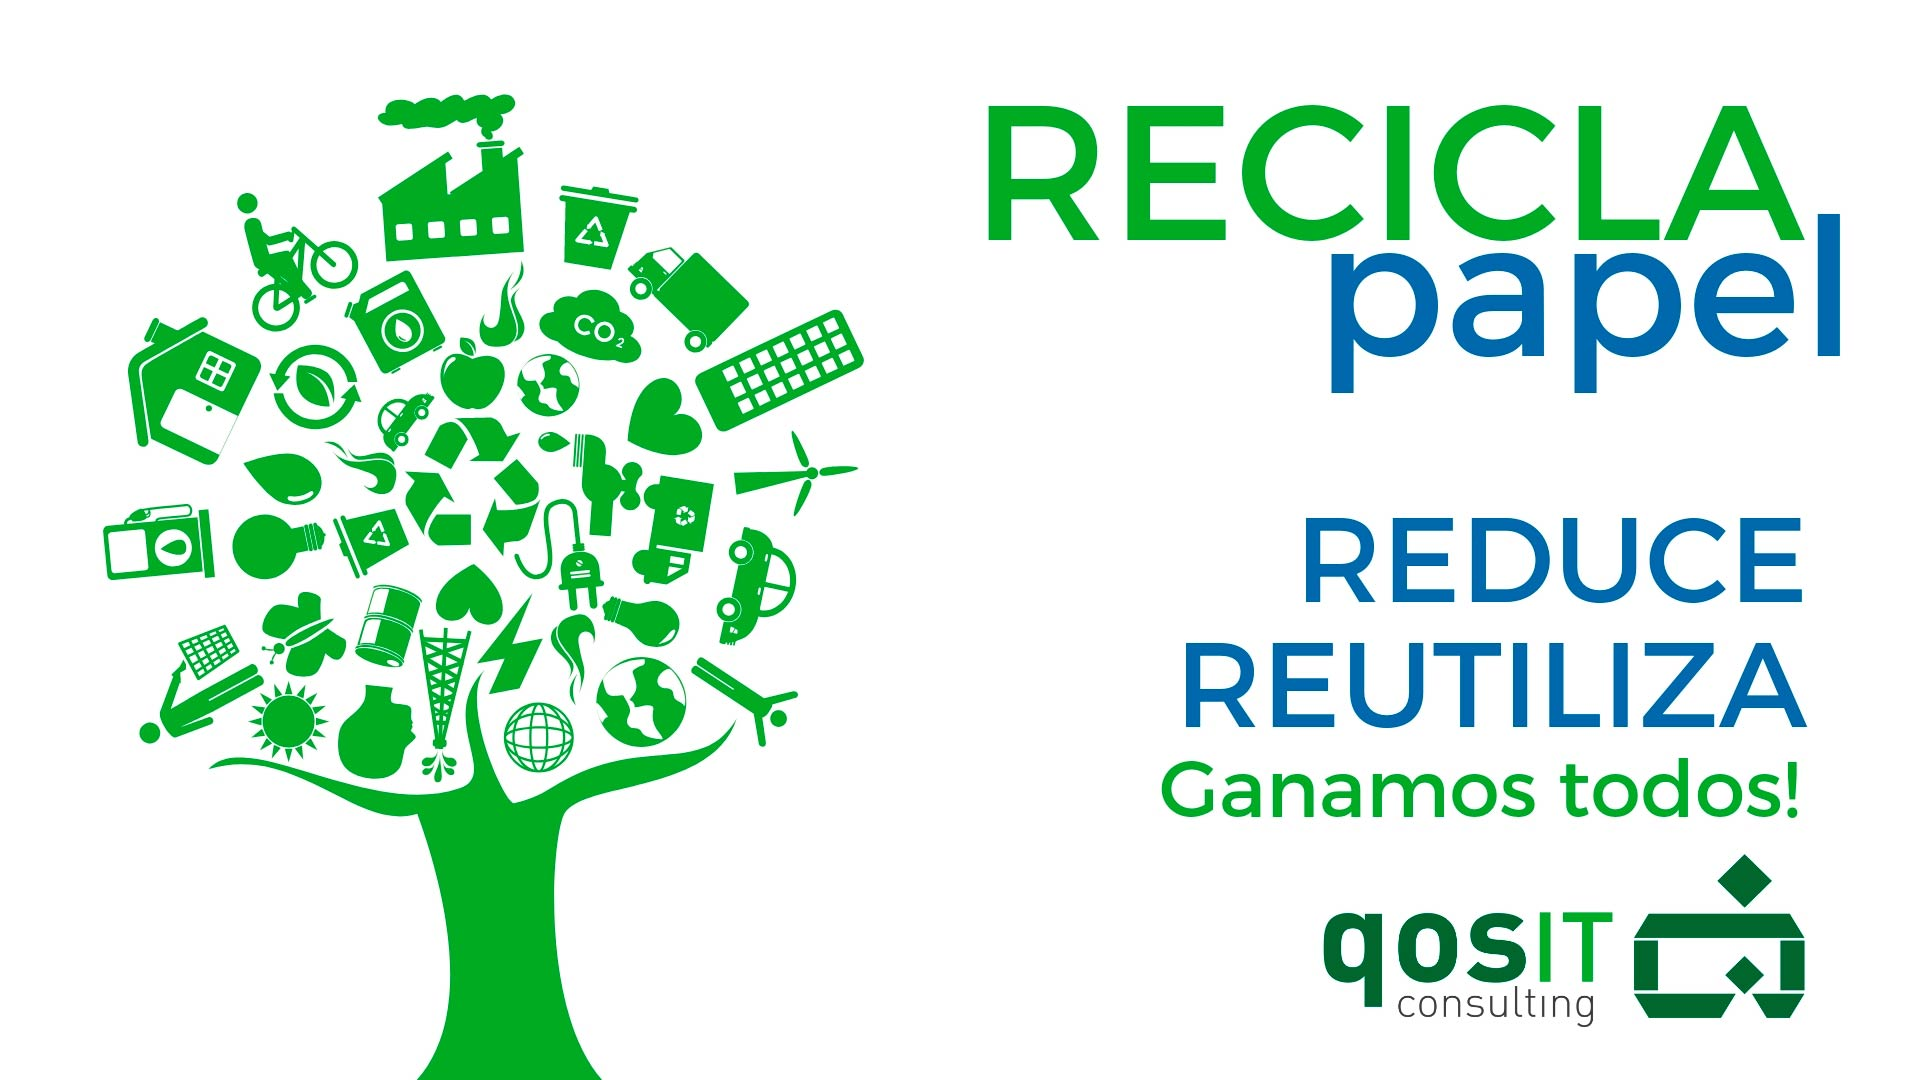 Recicla papel - qosITconsulting